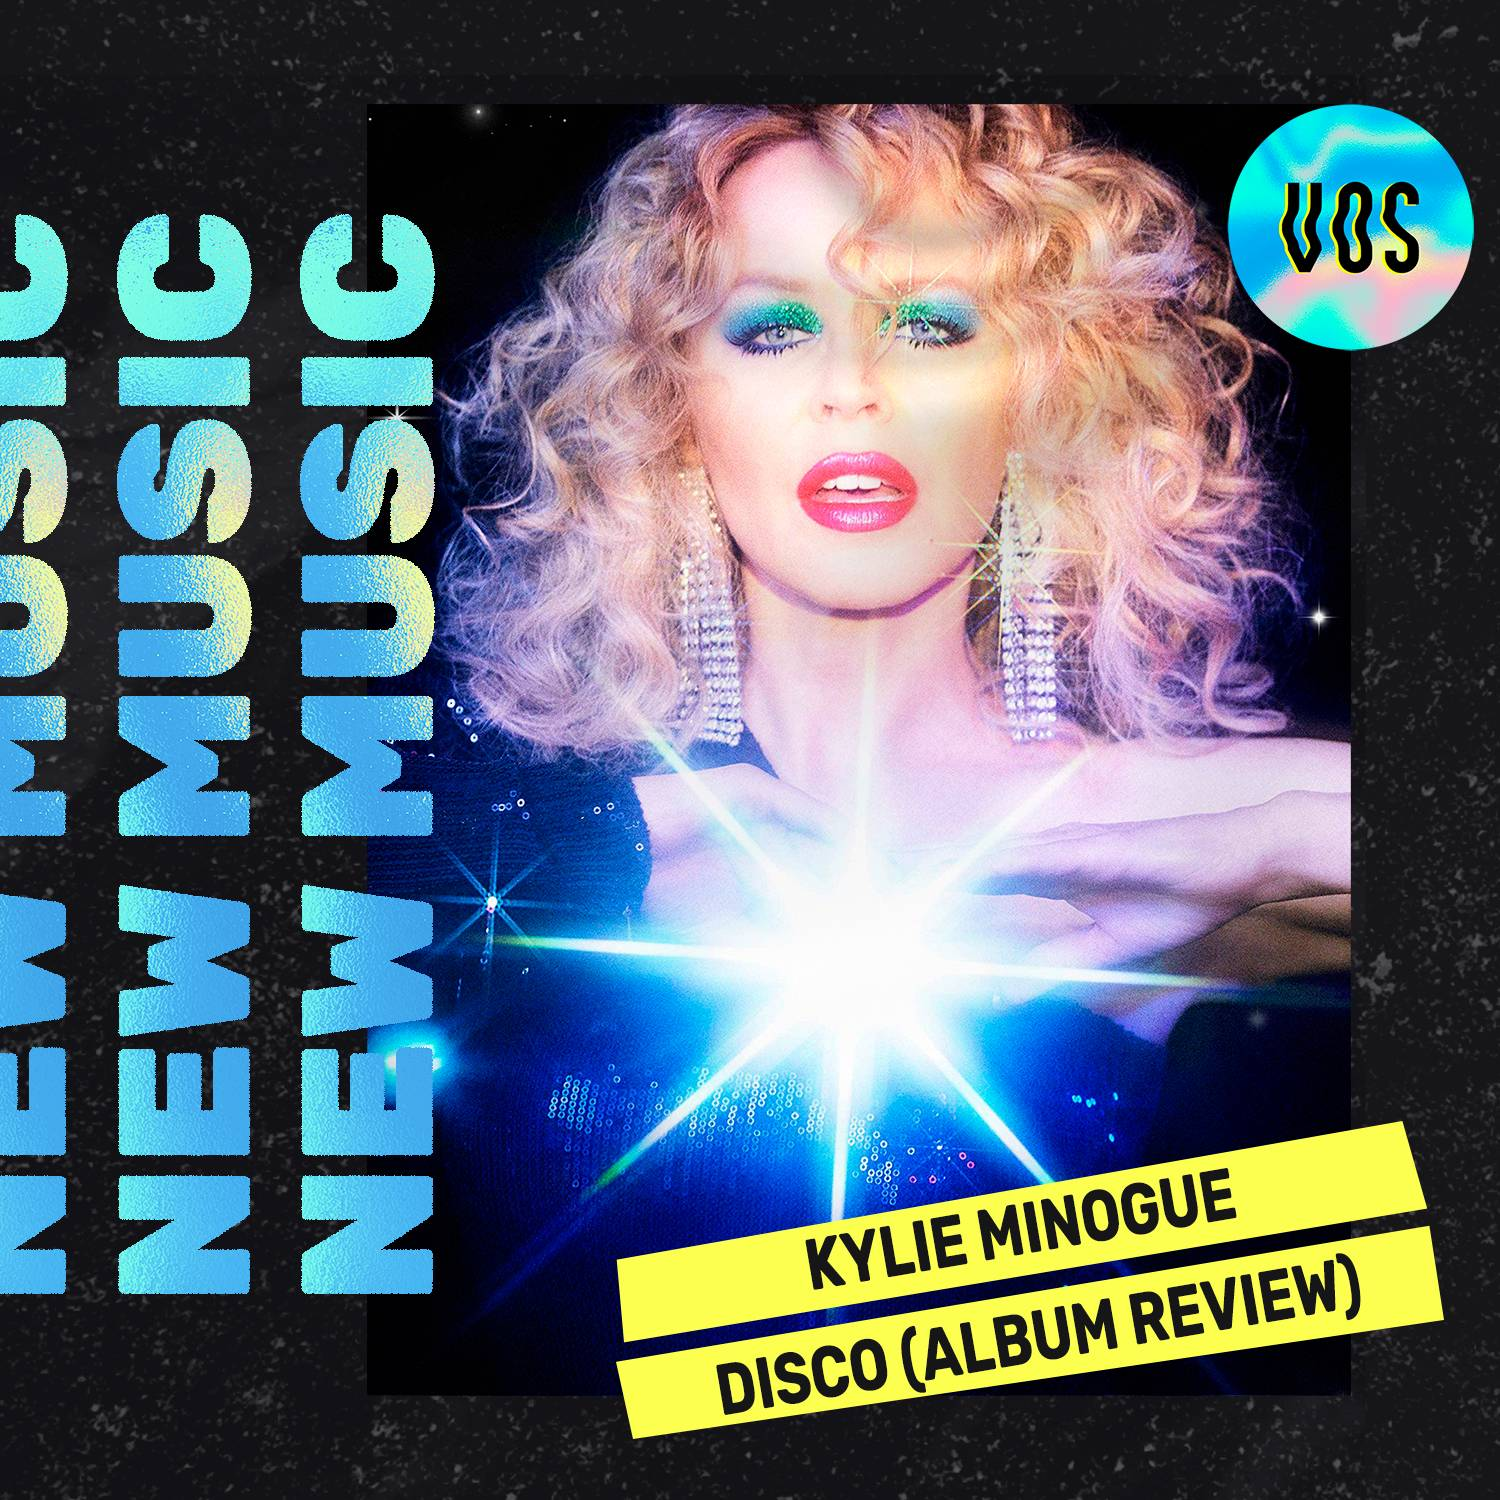 Kylie_Minogue_Disco_ReviewAlbum